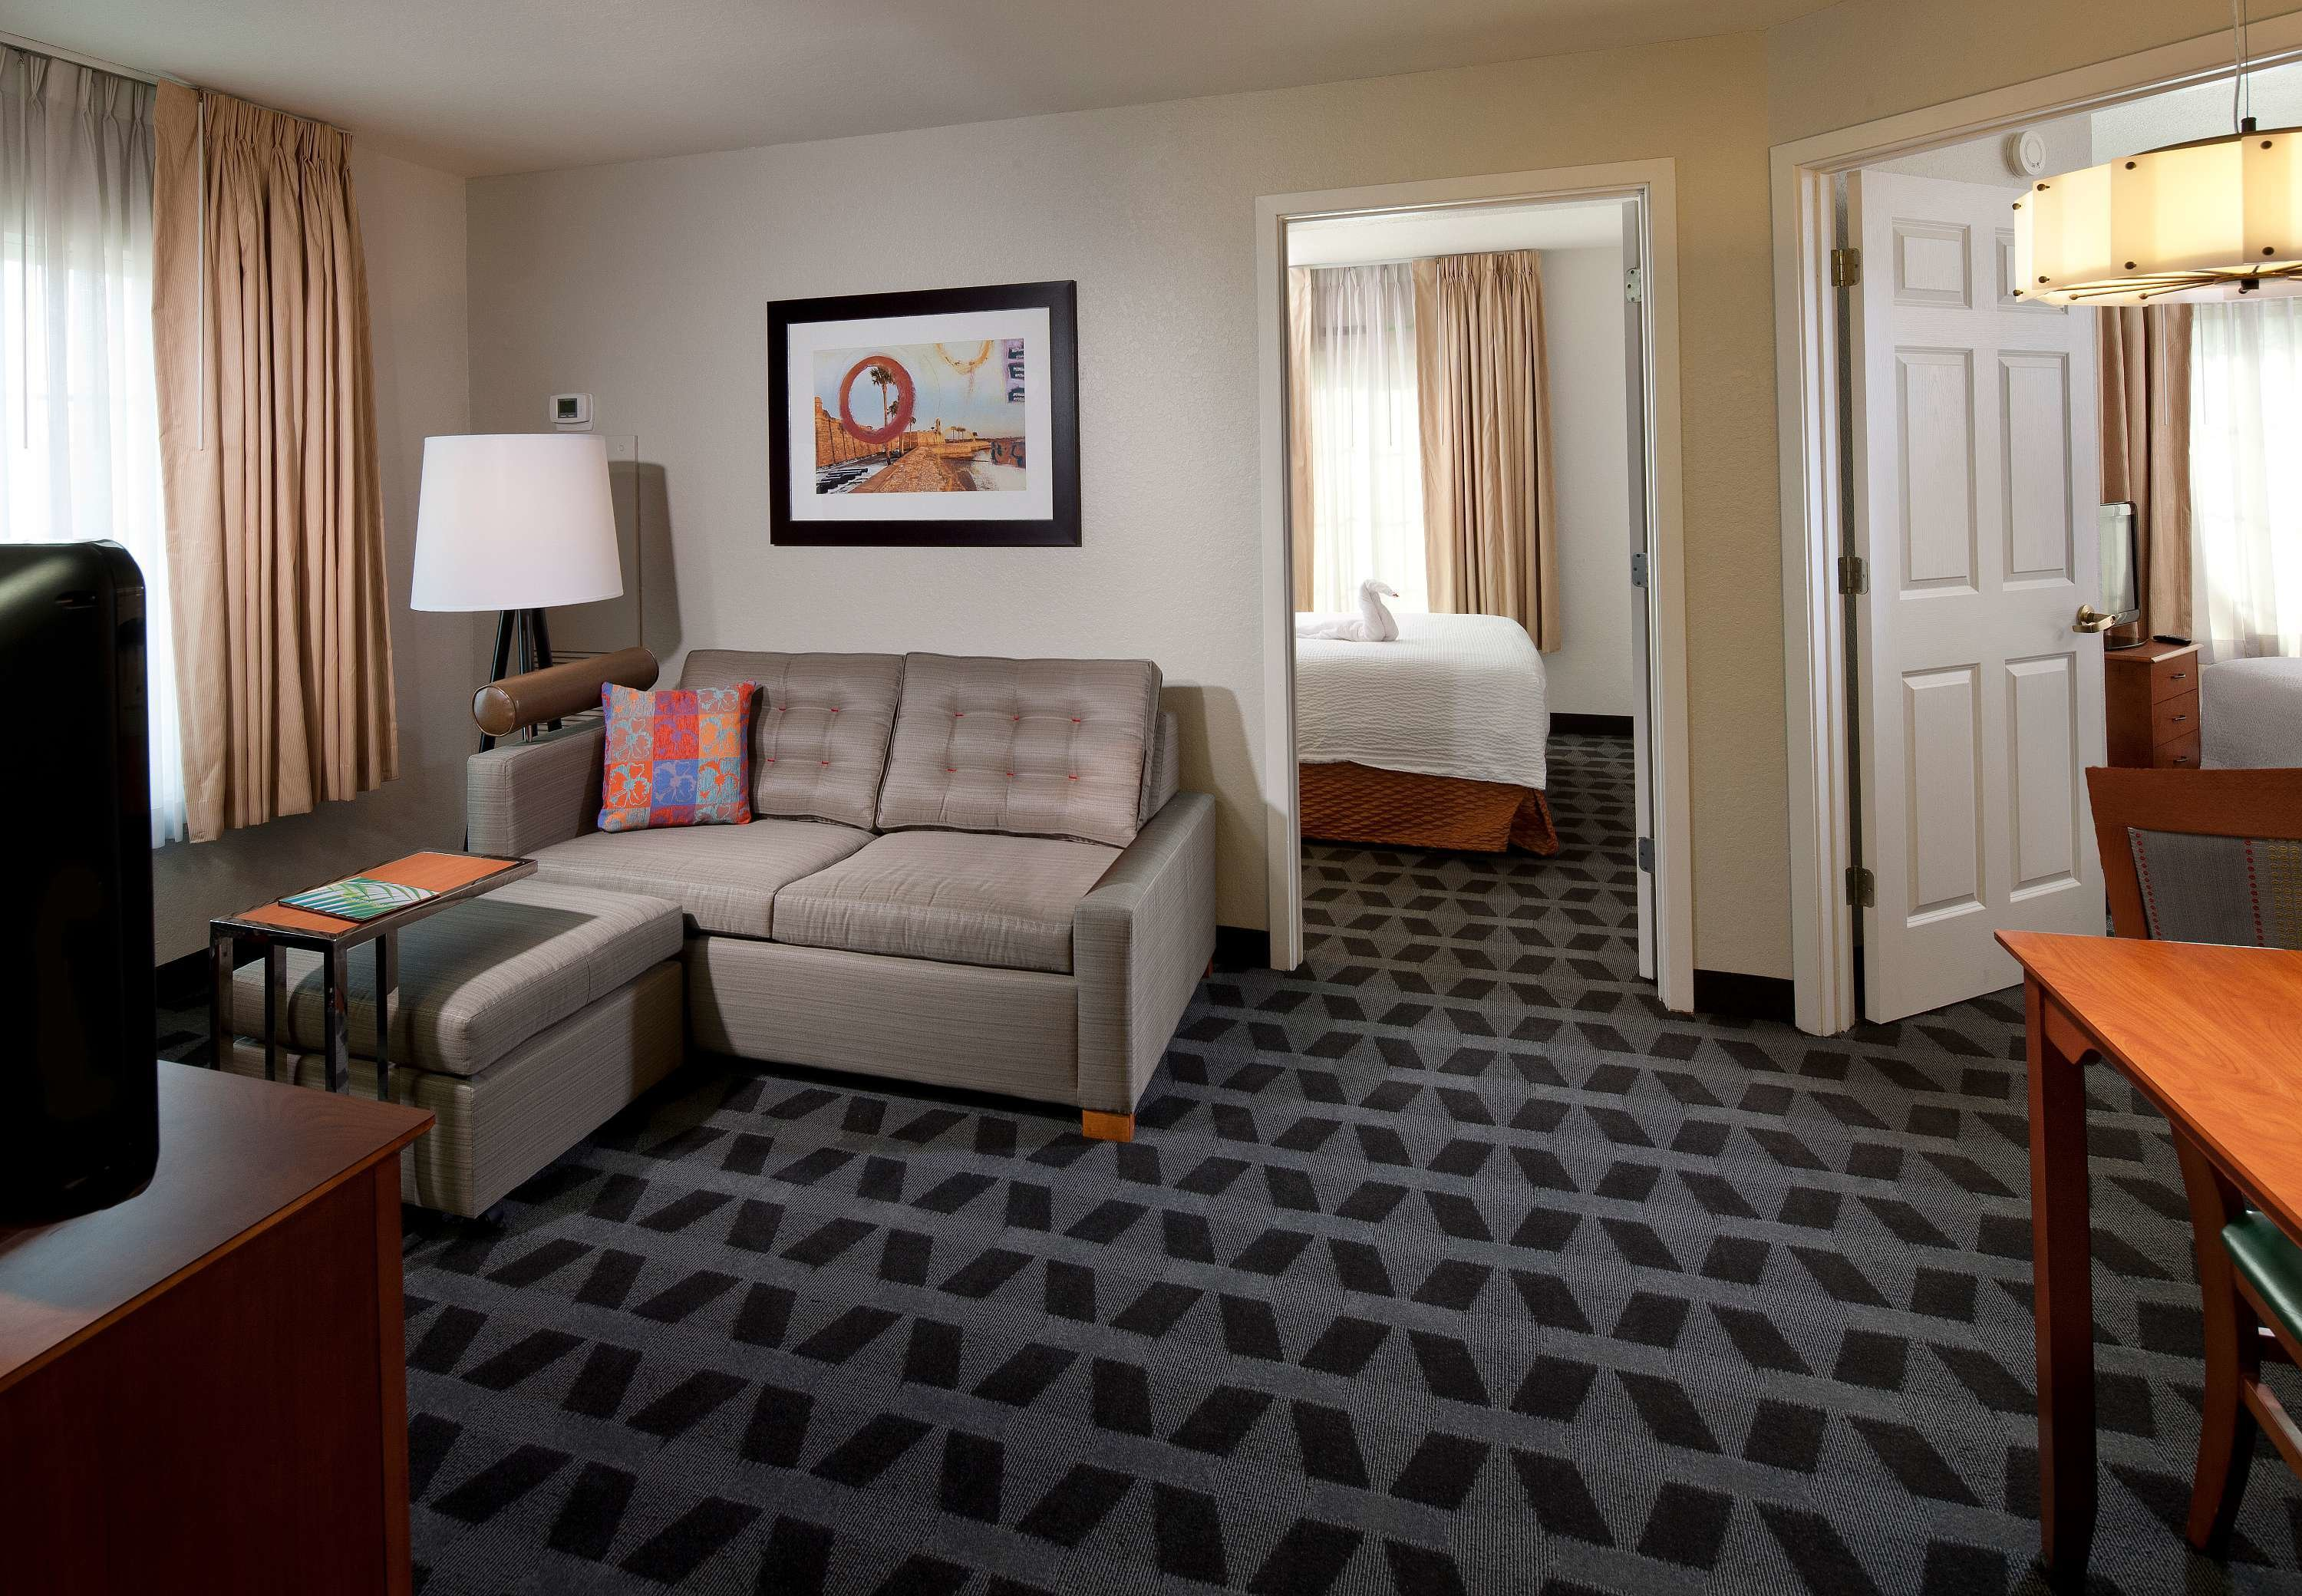 Best Fort Lauderdale Hotels – Towneplace Suites Fort Lauderdale With Pictures